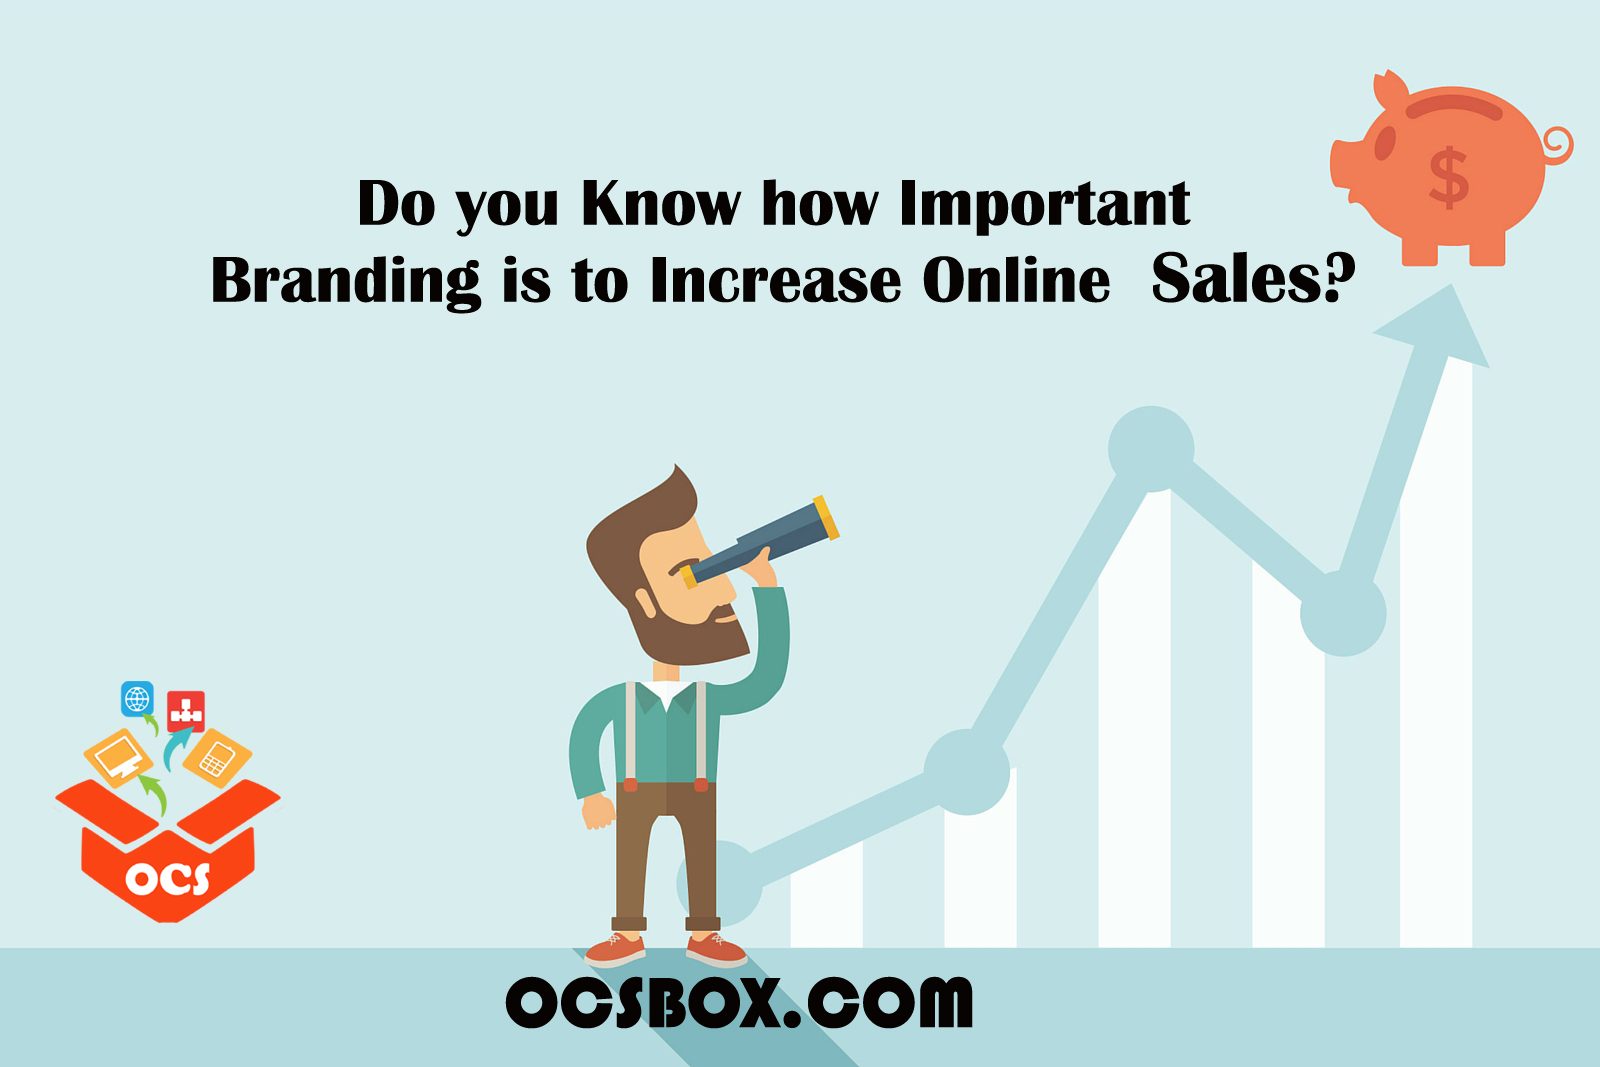 Do you Know how Important Branding is to Increase Online Sales?